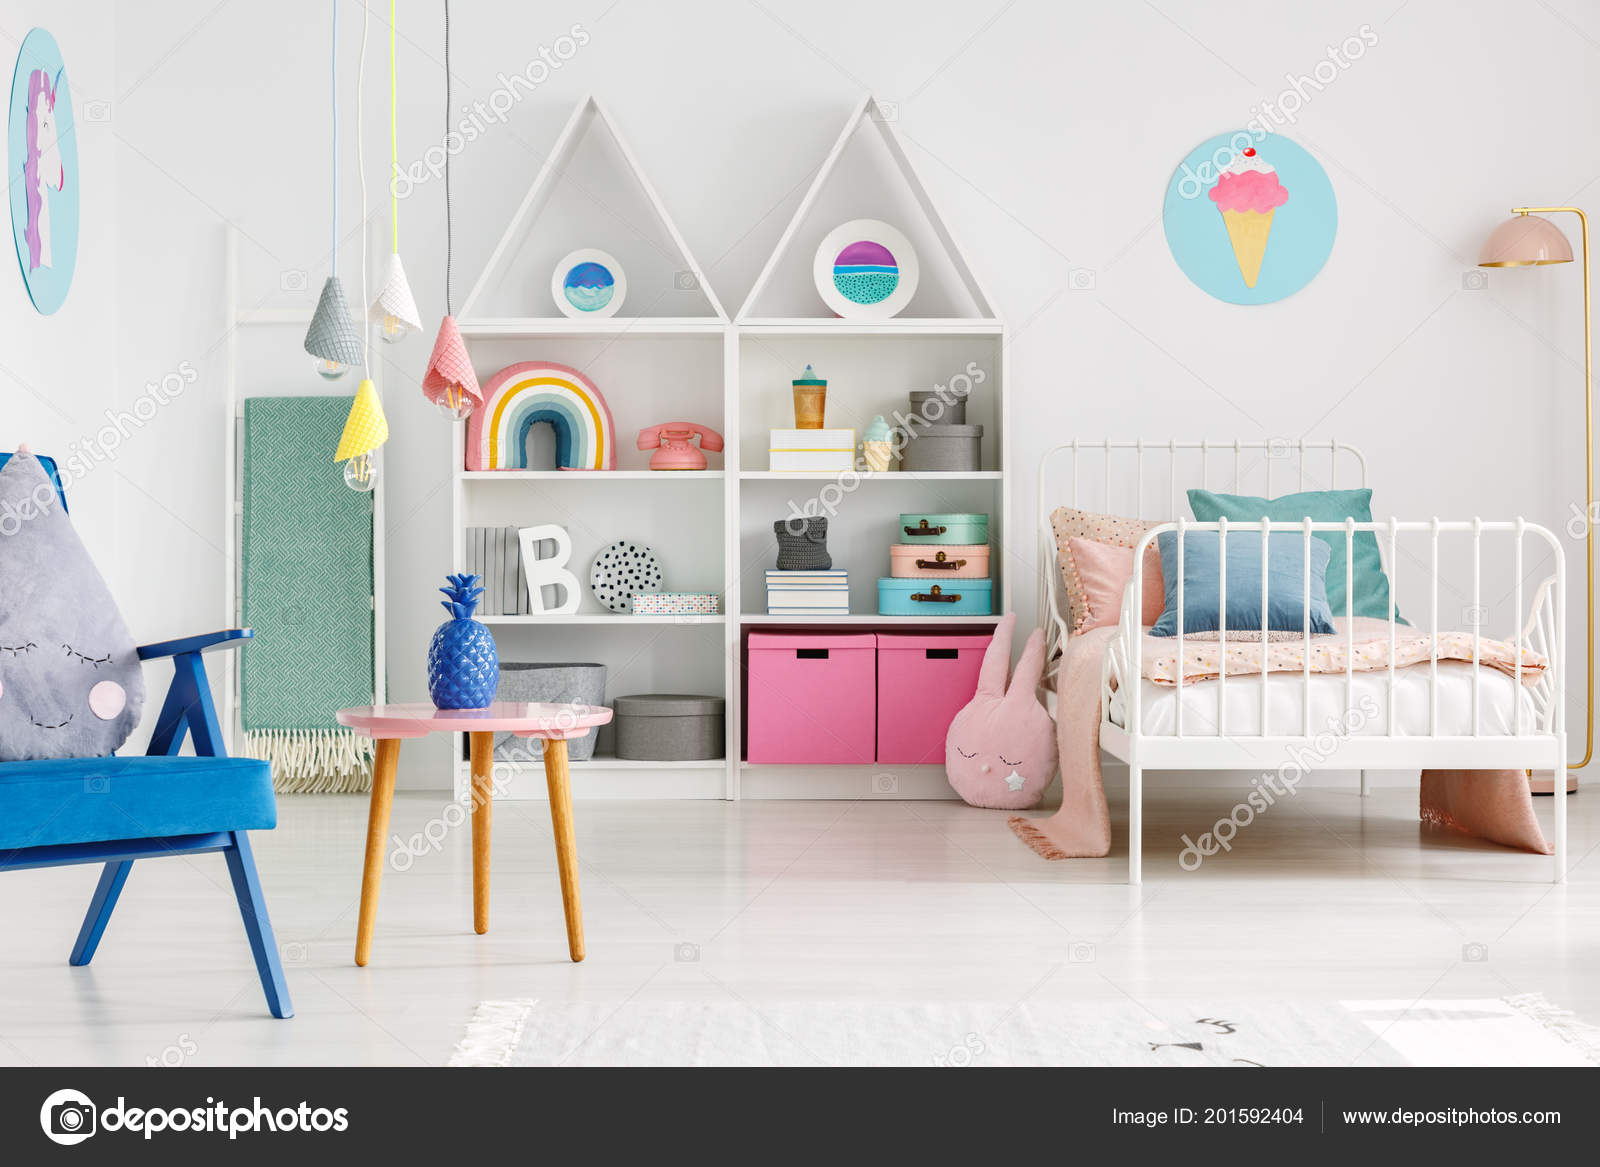 Poster Babykamer Pastel : Blue armchair spacious bright kid bedroom interior colorful lamps